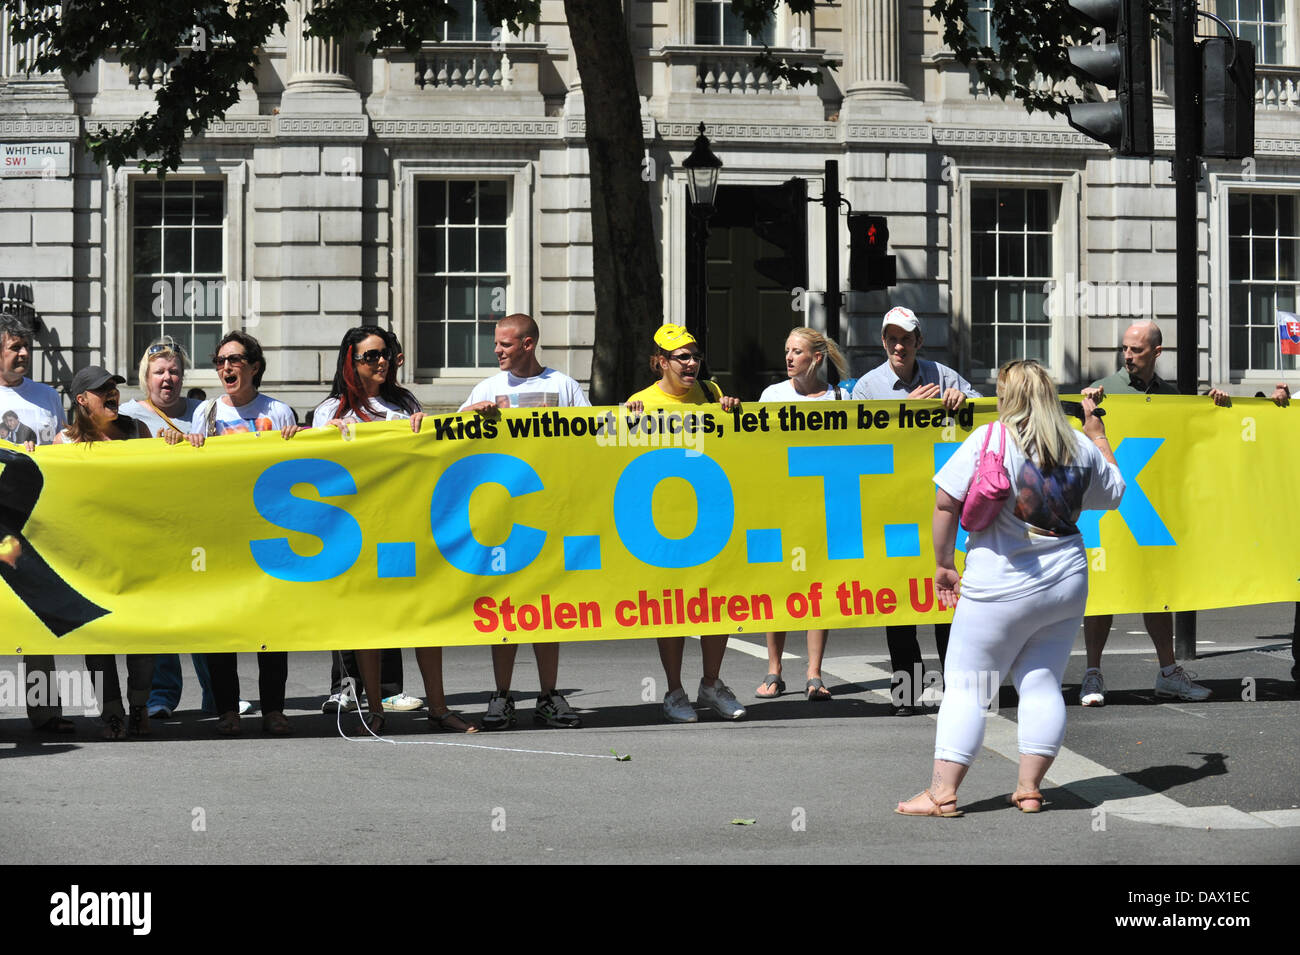 Whitehall, London, UK. 19th July 2013. Members of the group hold a banner at the S.C.O.T. UK protest outside Downing - Stock Image